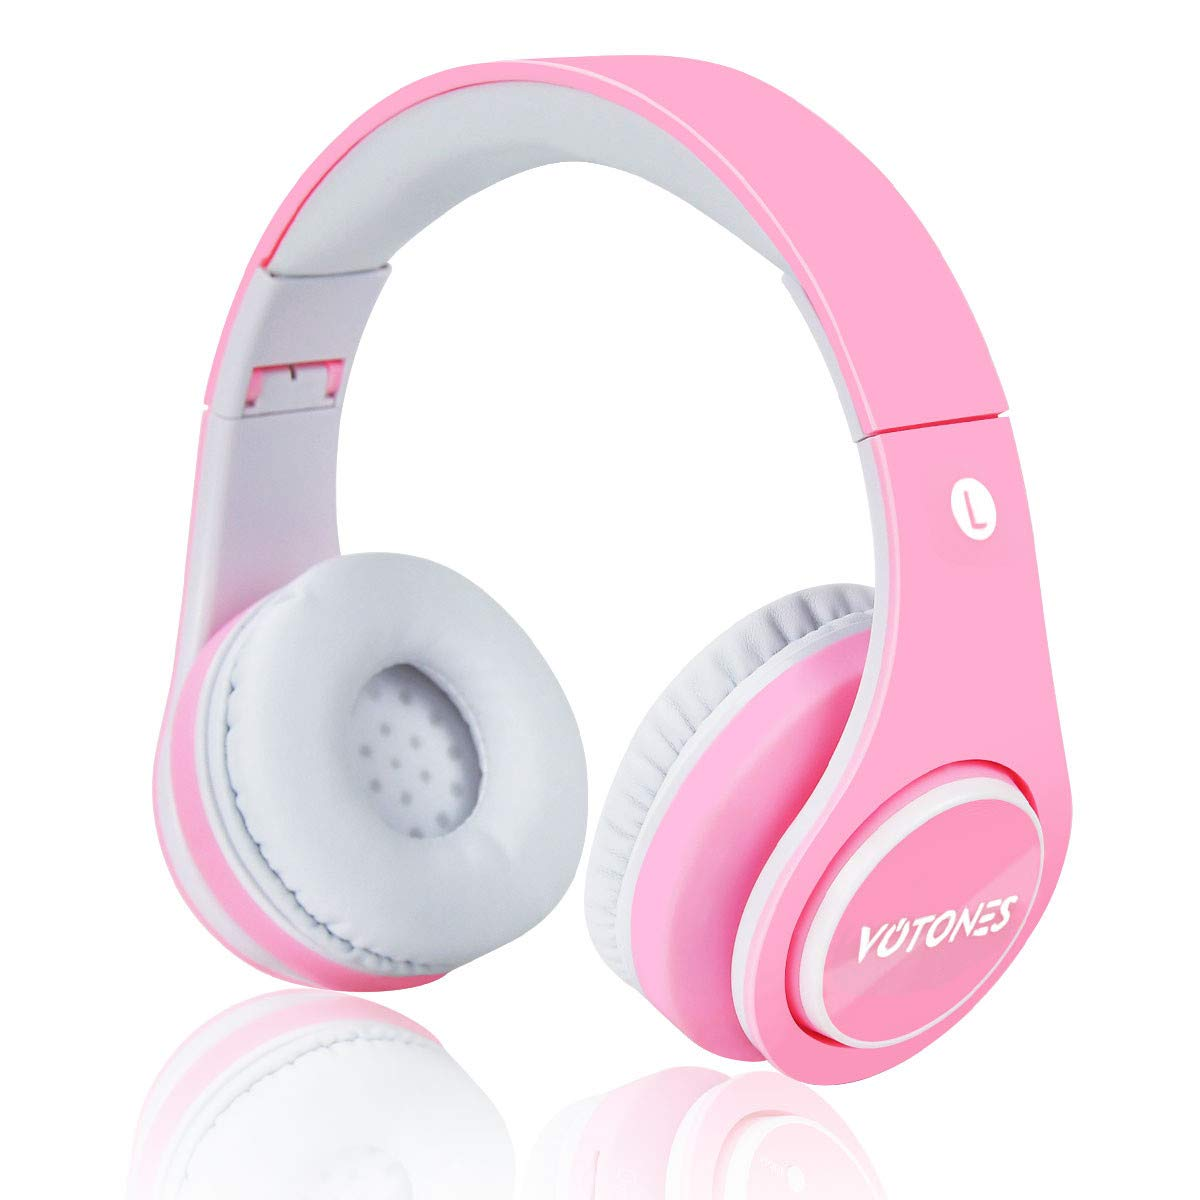 【Upgrade Version】 Girls Wireless Bluetooth Headphone,VOTONES 85dB Volume Limited Kids Foldable Over Ear Headset,Great Gift for Children Earphone Compatible with Smartphones and PC Tablet(Pink)